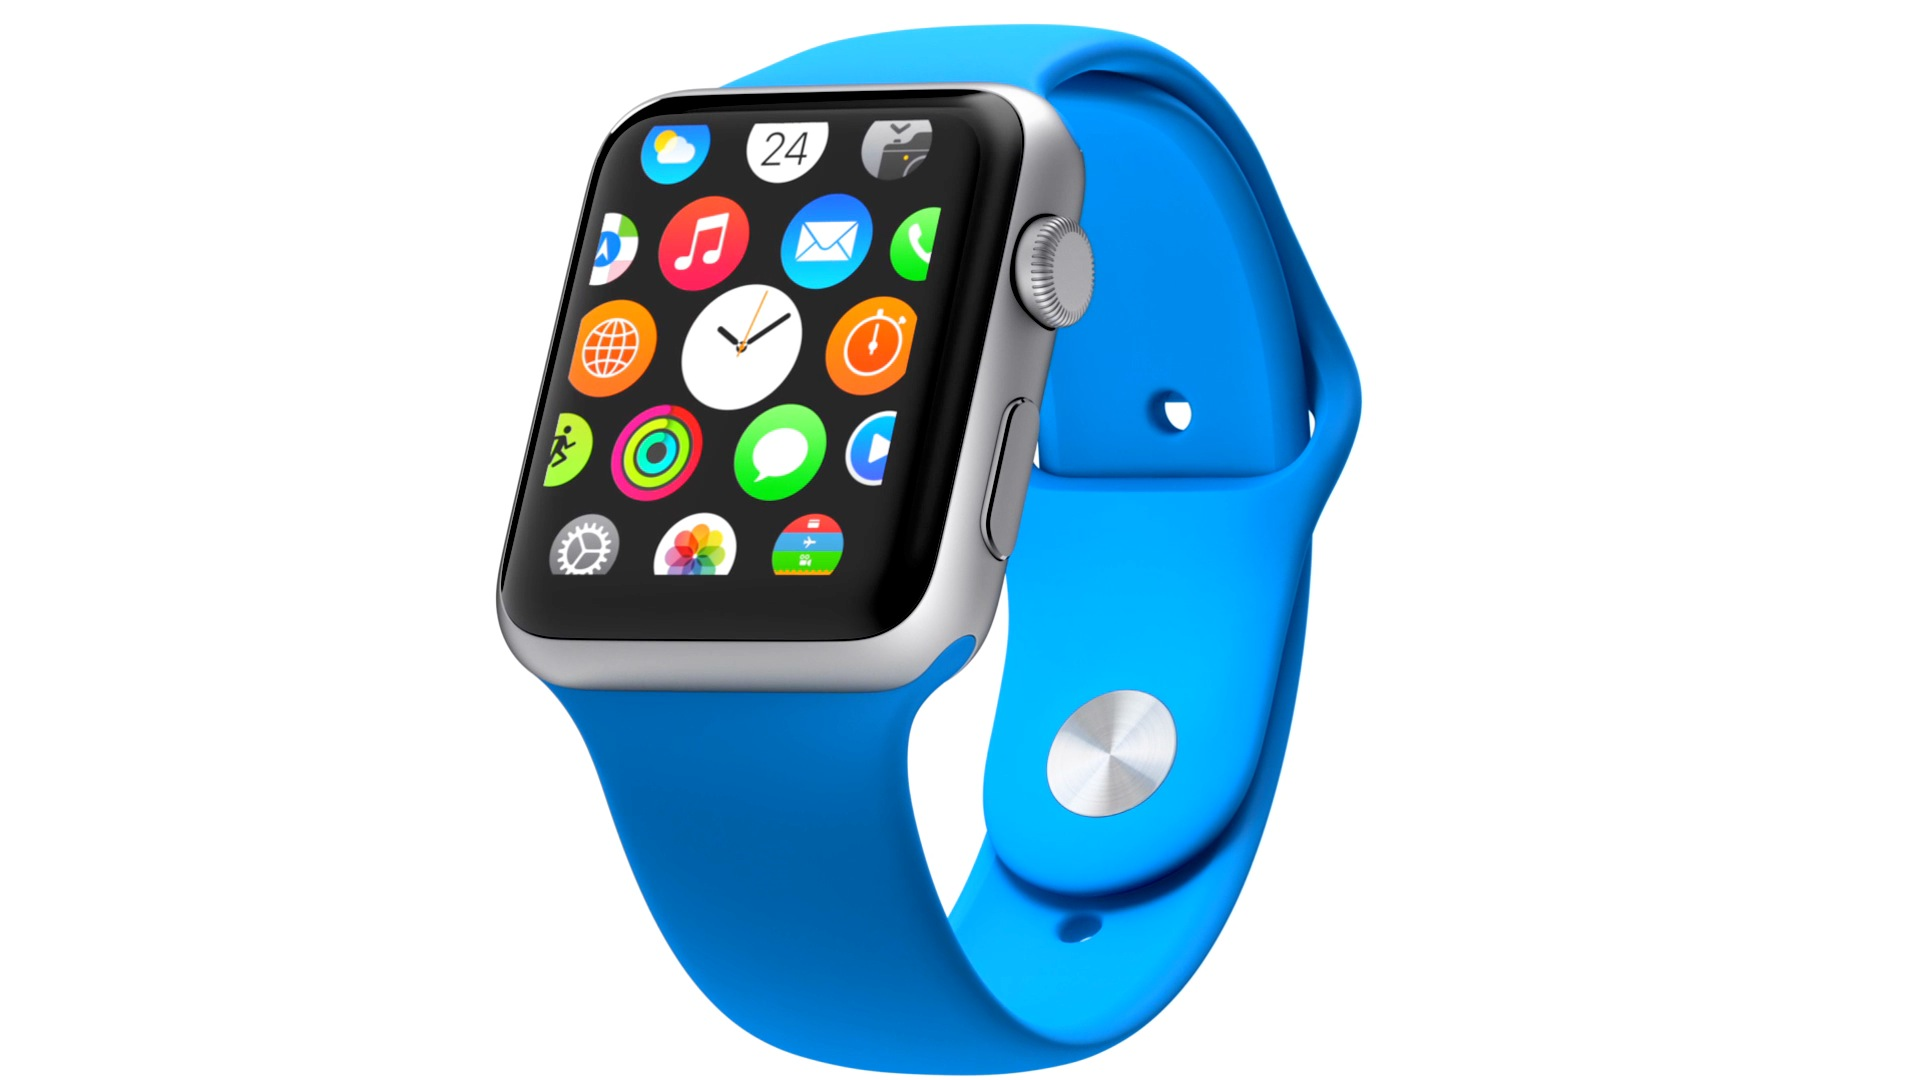 Apple Watch 2 Rumors: Price, Specs, Release Date and ...